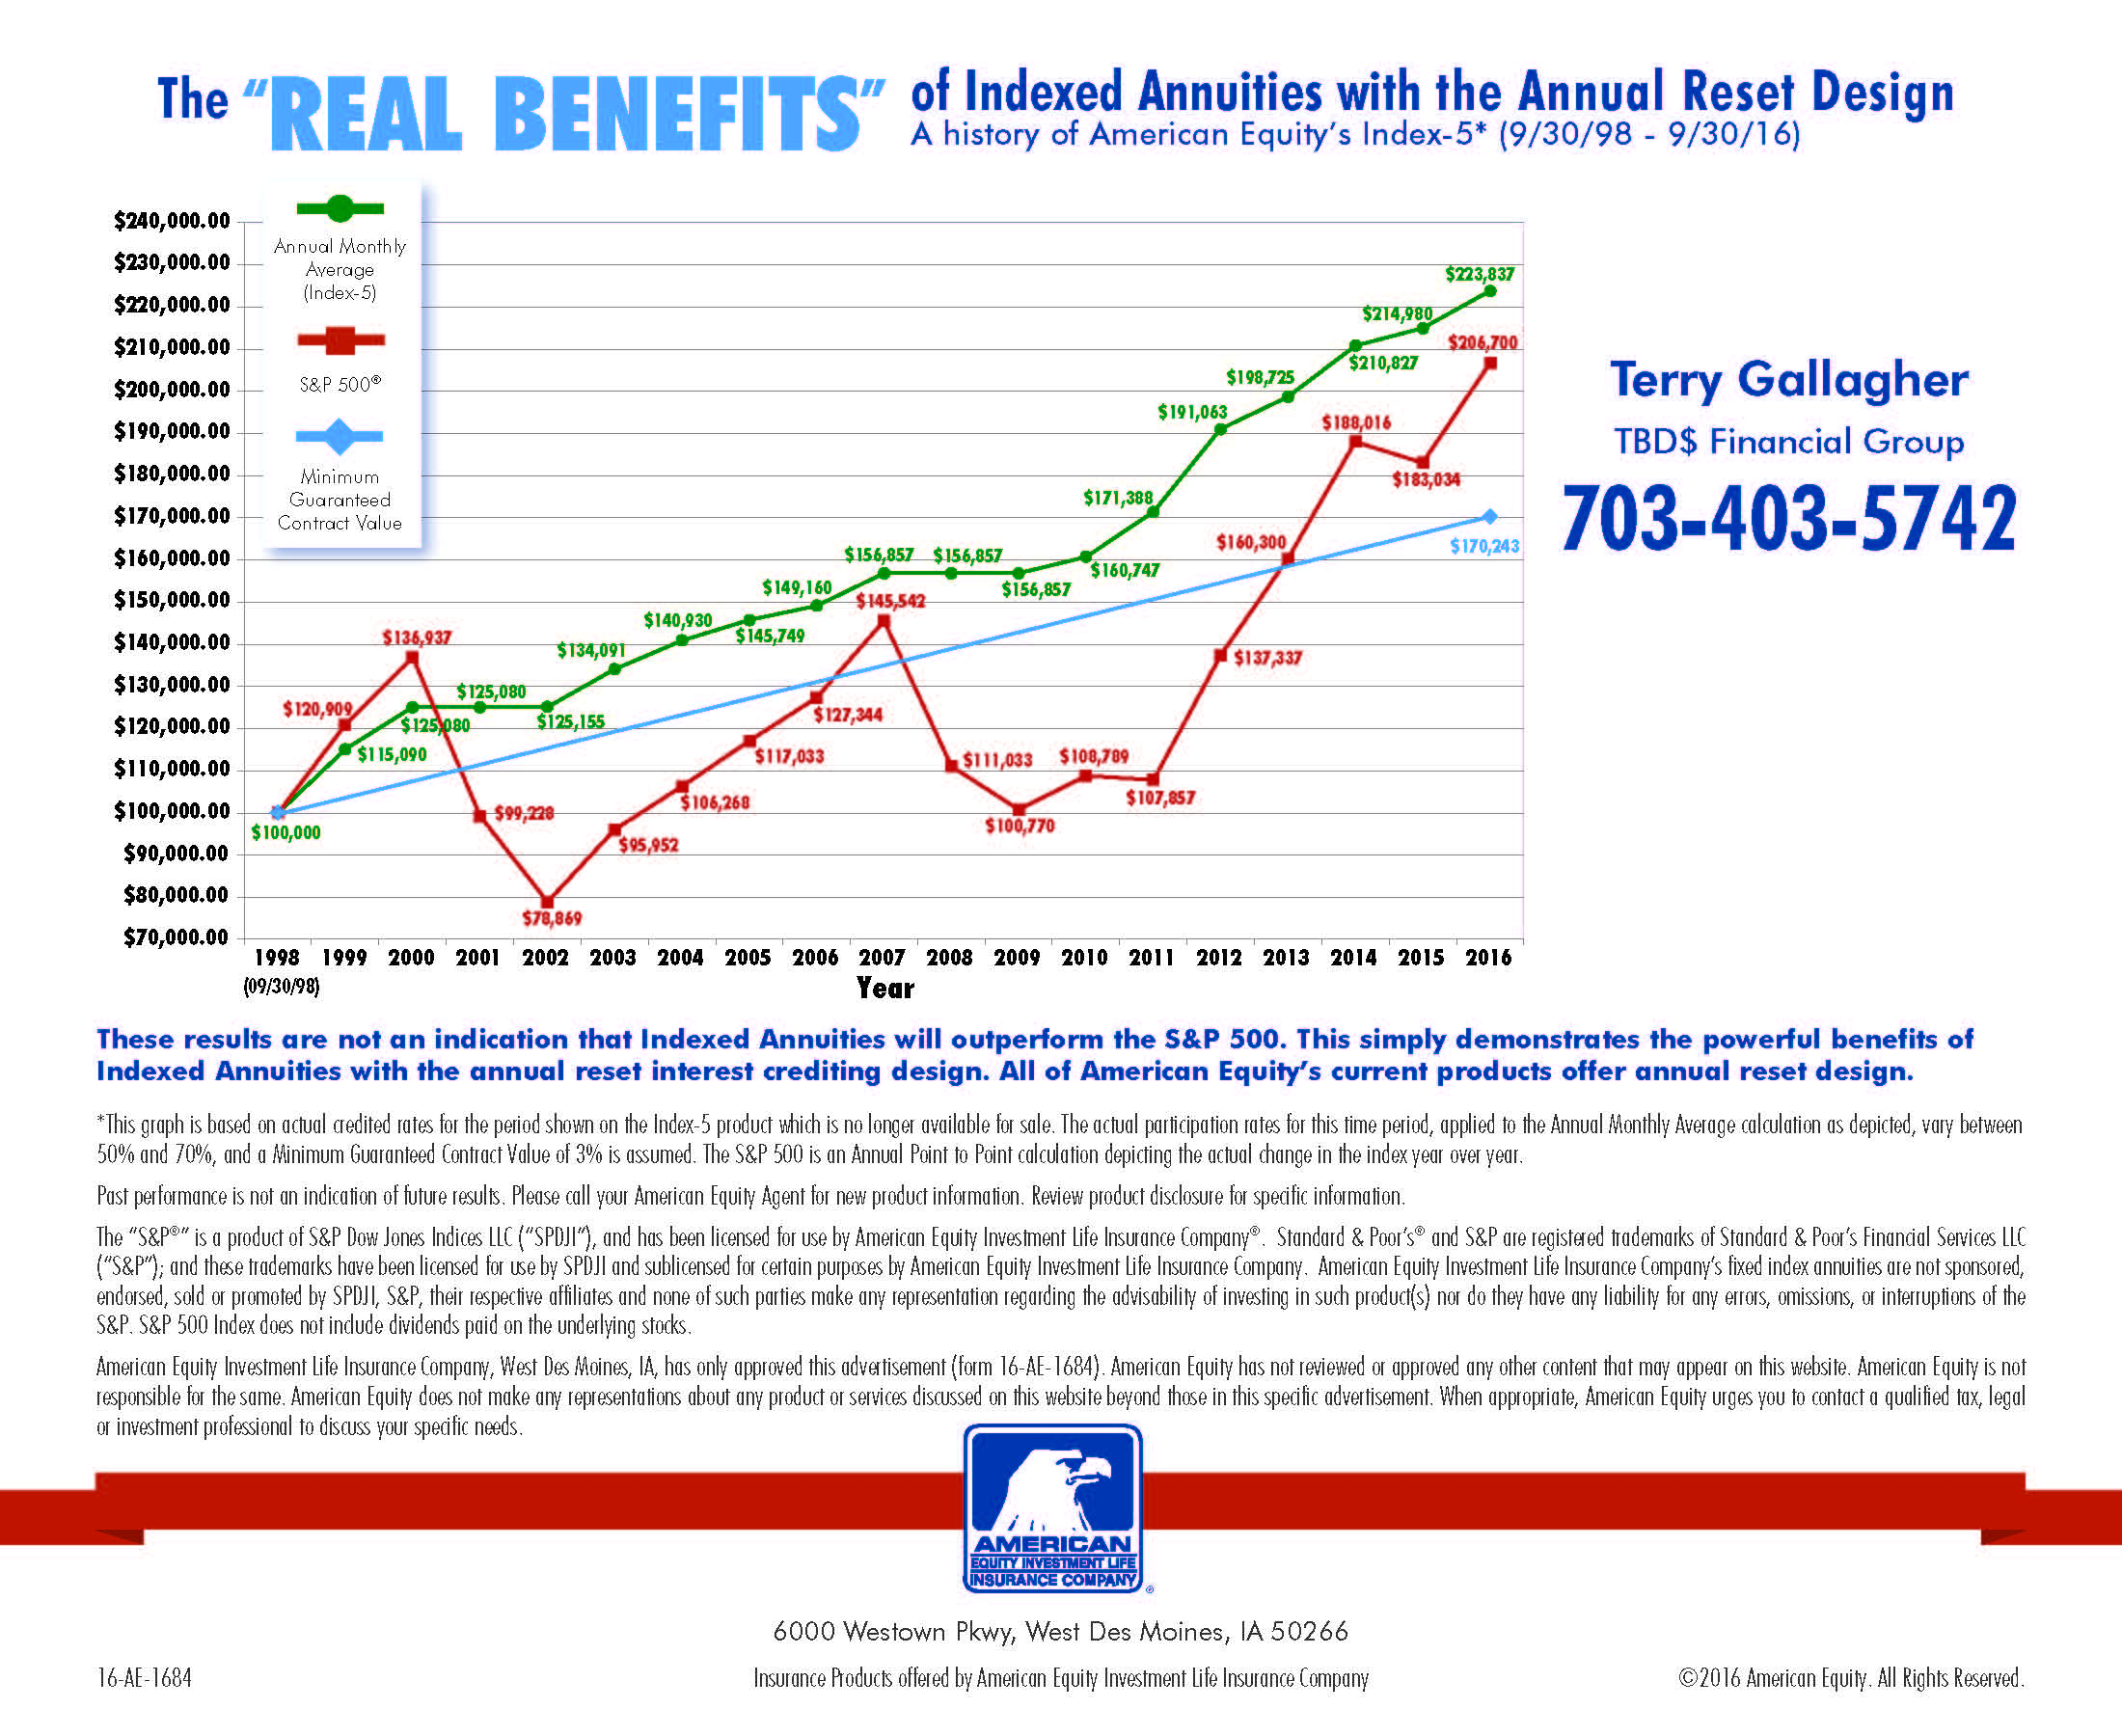 tbds financial group tbdsfinancialgroup com american equity investment life insurance company west des moines ia has only approved this advertisement form 1684 american equity has not reviewed